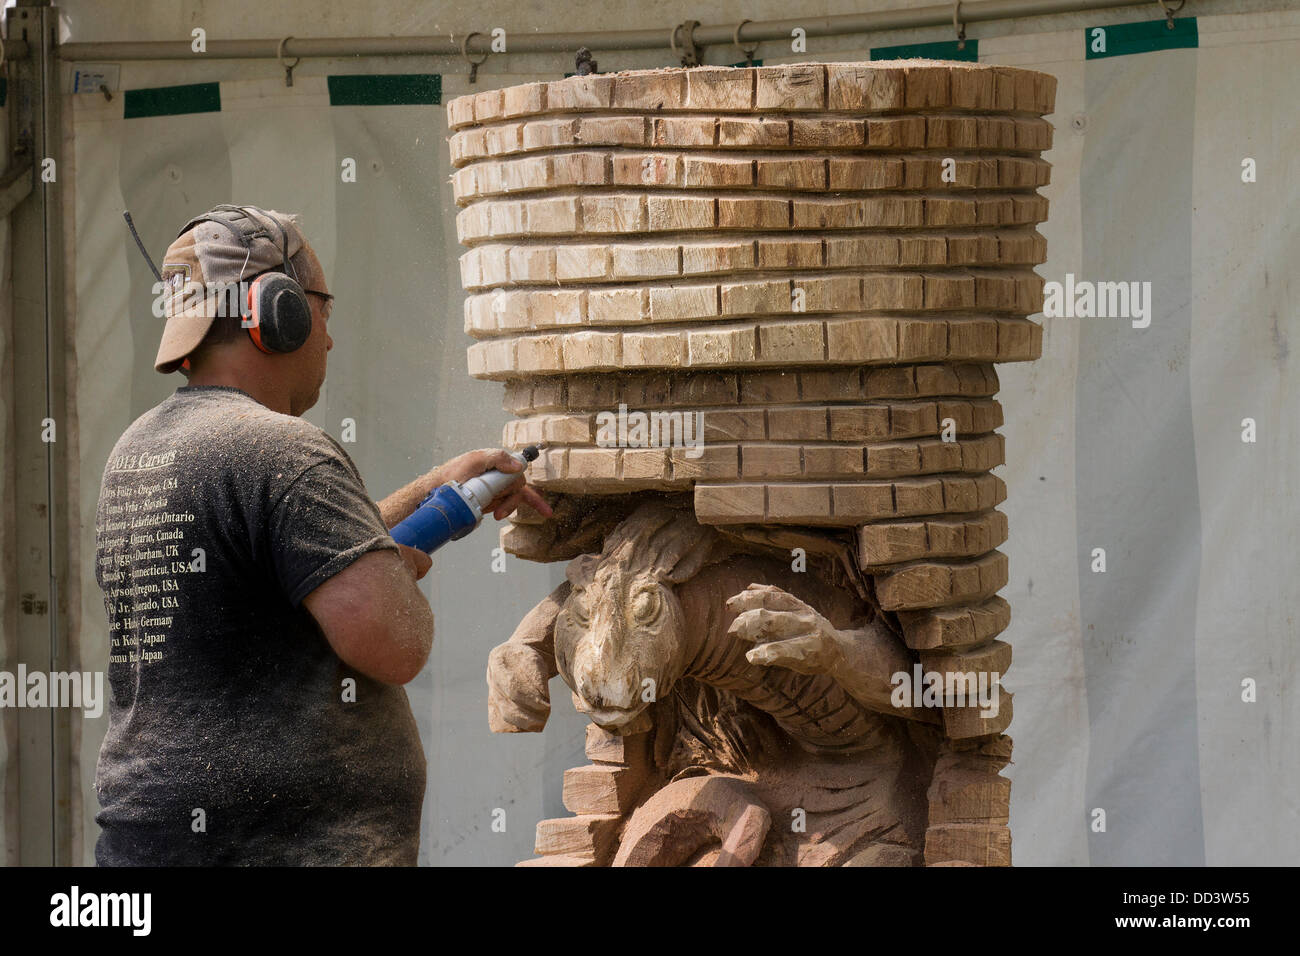 Tabley, Cheshire, UK 25th August, 2013. Steven Kenzora from Canada at the 9th English Open Chainsaw Carving Competition, - Stock Image